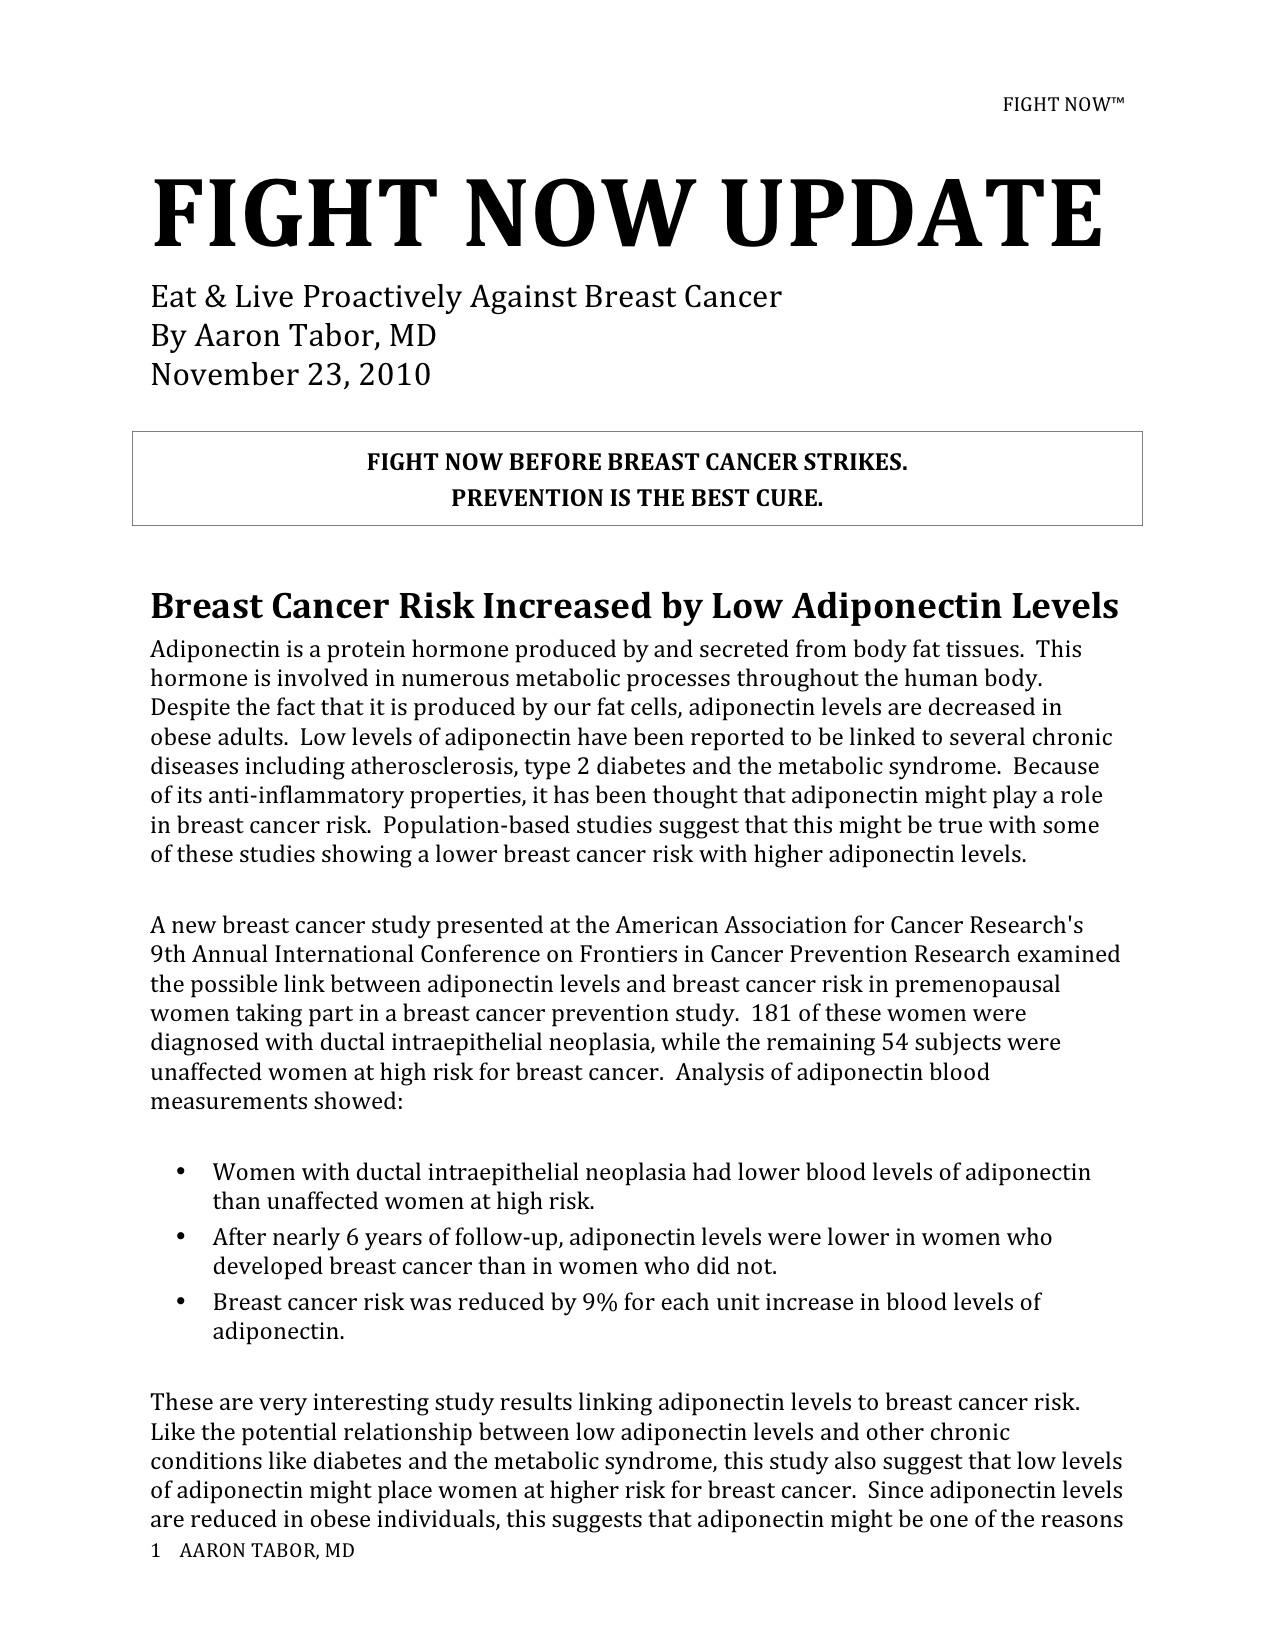 Fight Now Breast Cancer Newsletter - November 23rd, 2010